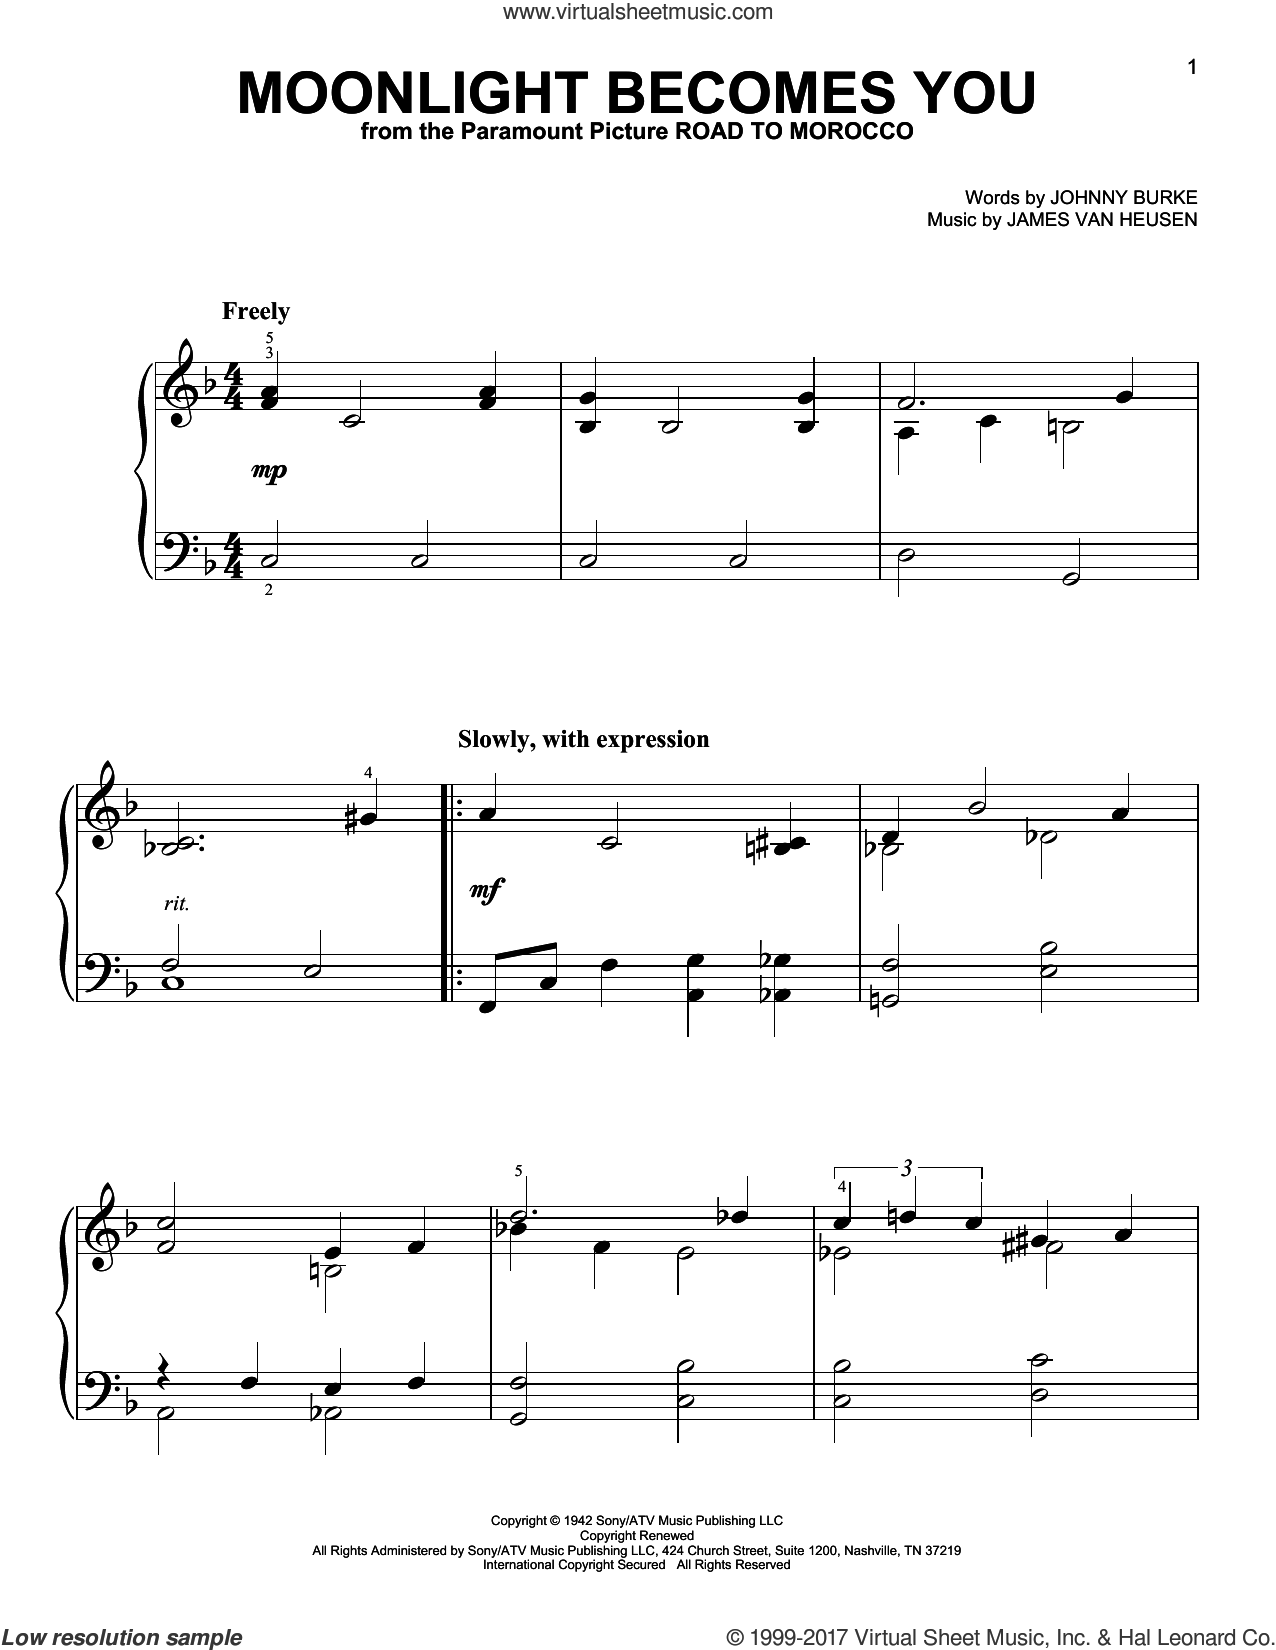 Moonlight Becomes You sheet music for piano solo by Jimmy Van Heusen and John Burke, easy skill level